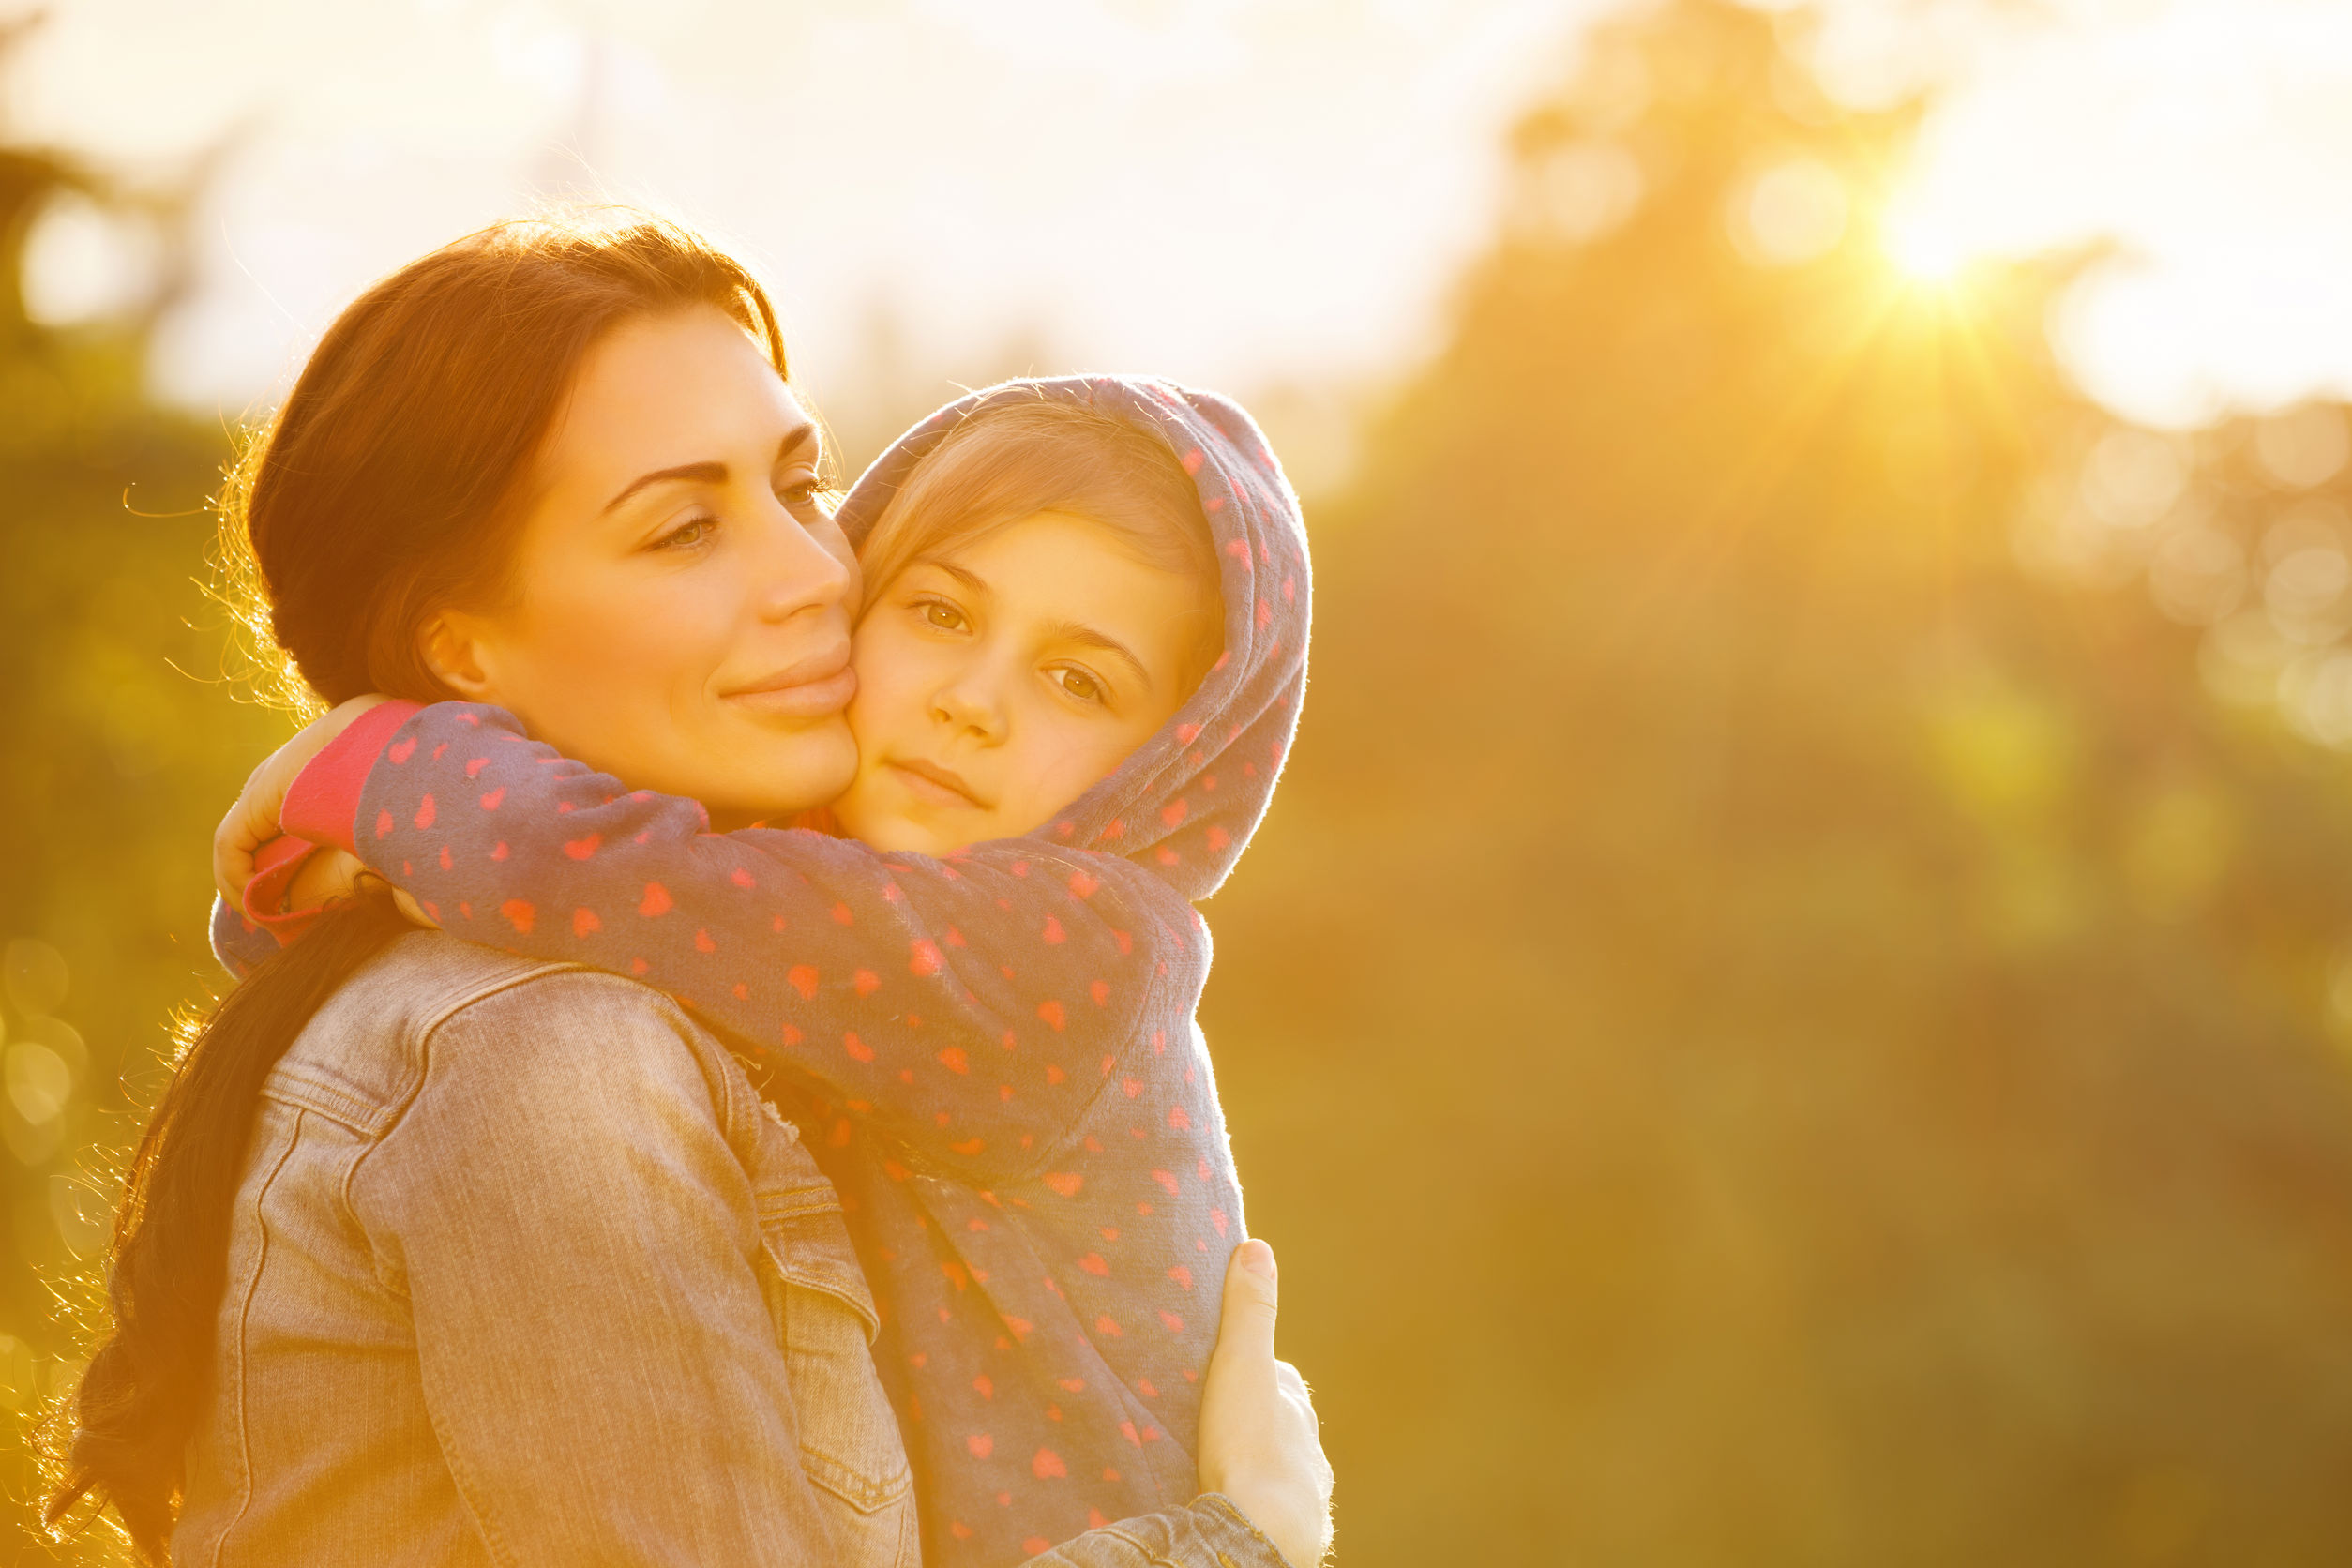 A mother and daughter safe from harm at the Peace House in Park City, Utah